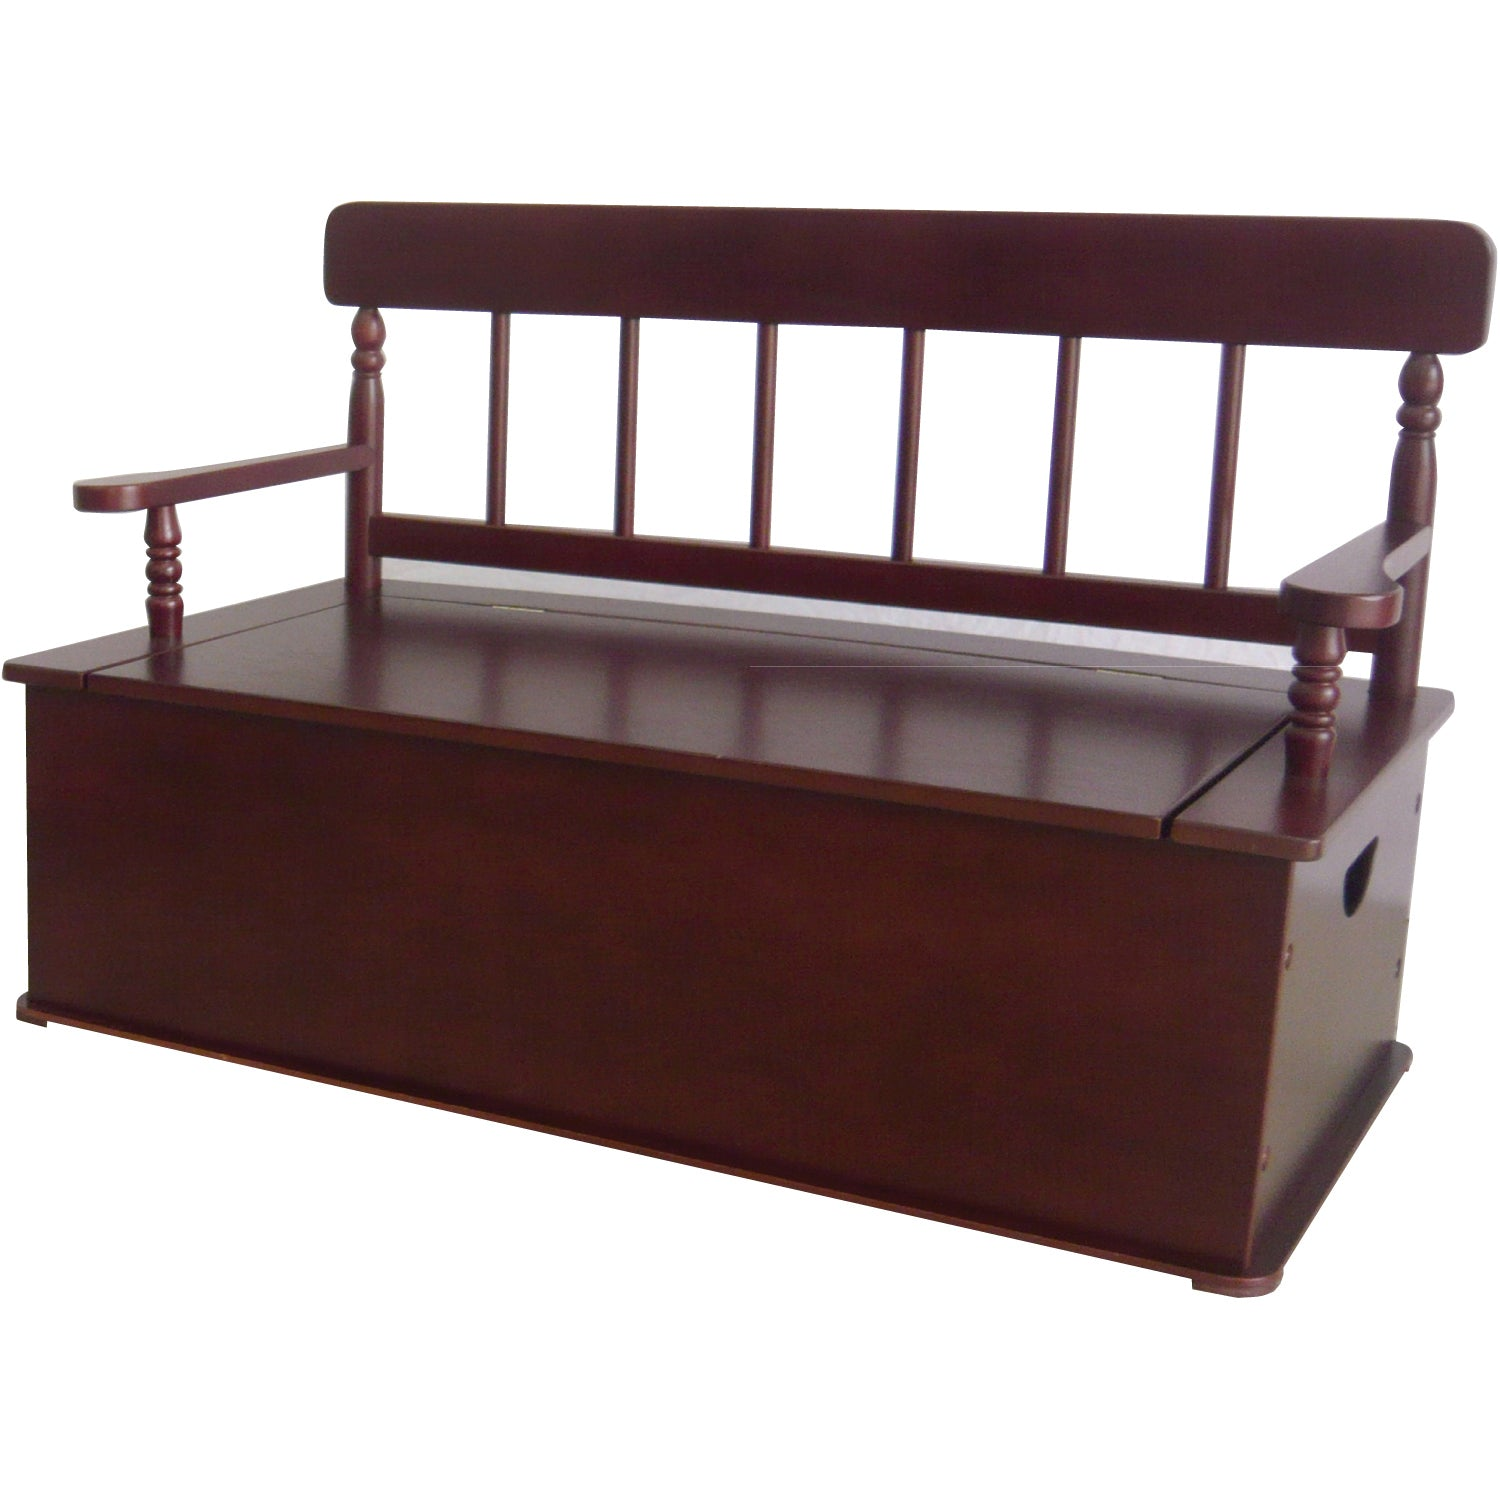 Classic Kids Cherry Bench Seat with Storage